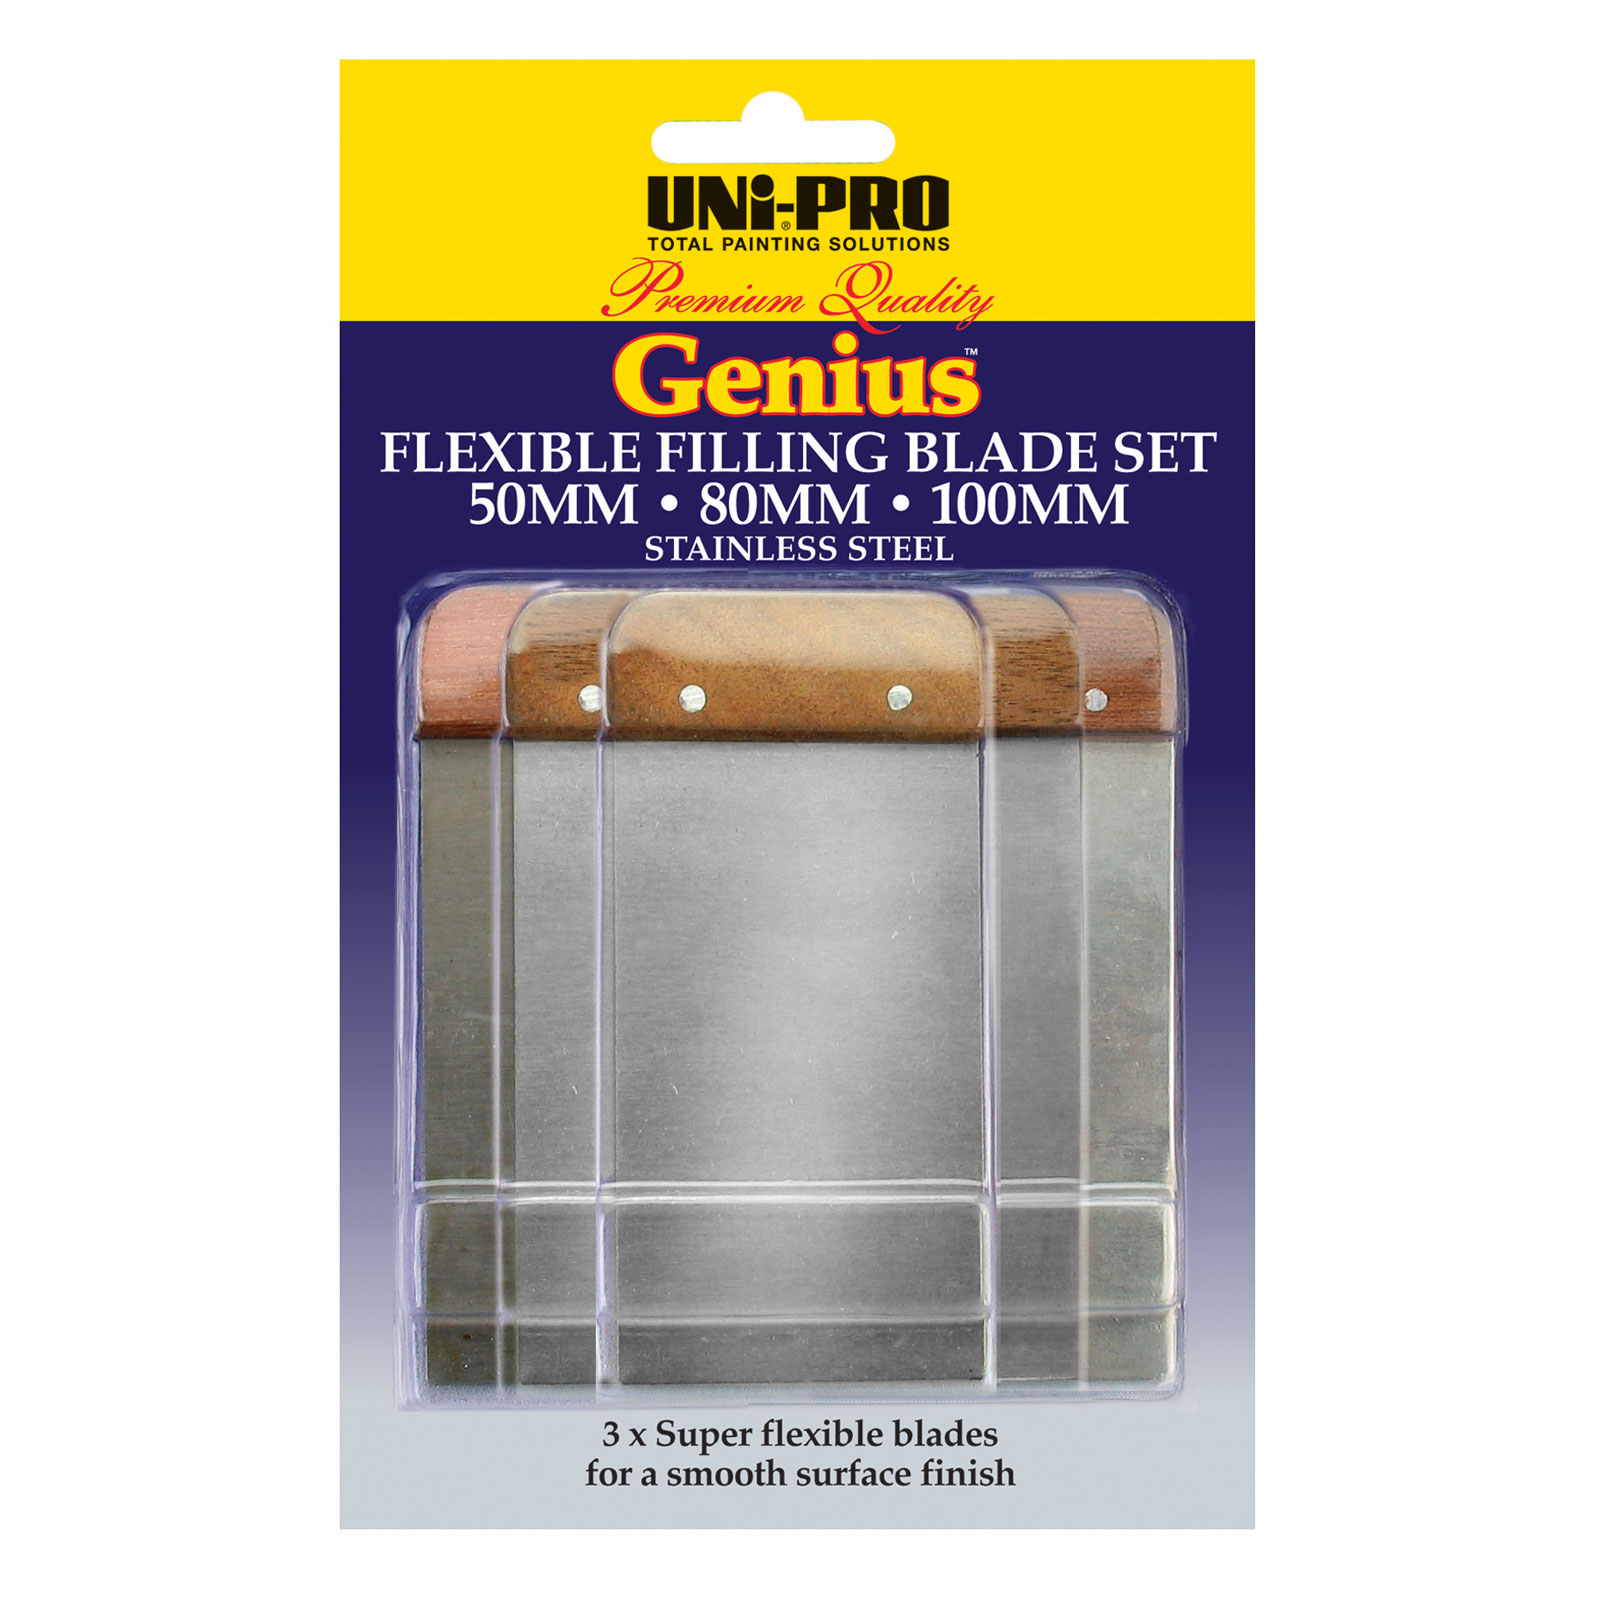 Genius Flexible Filling Blades Set - 3 Pcs